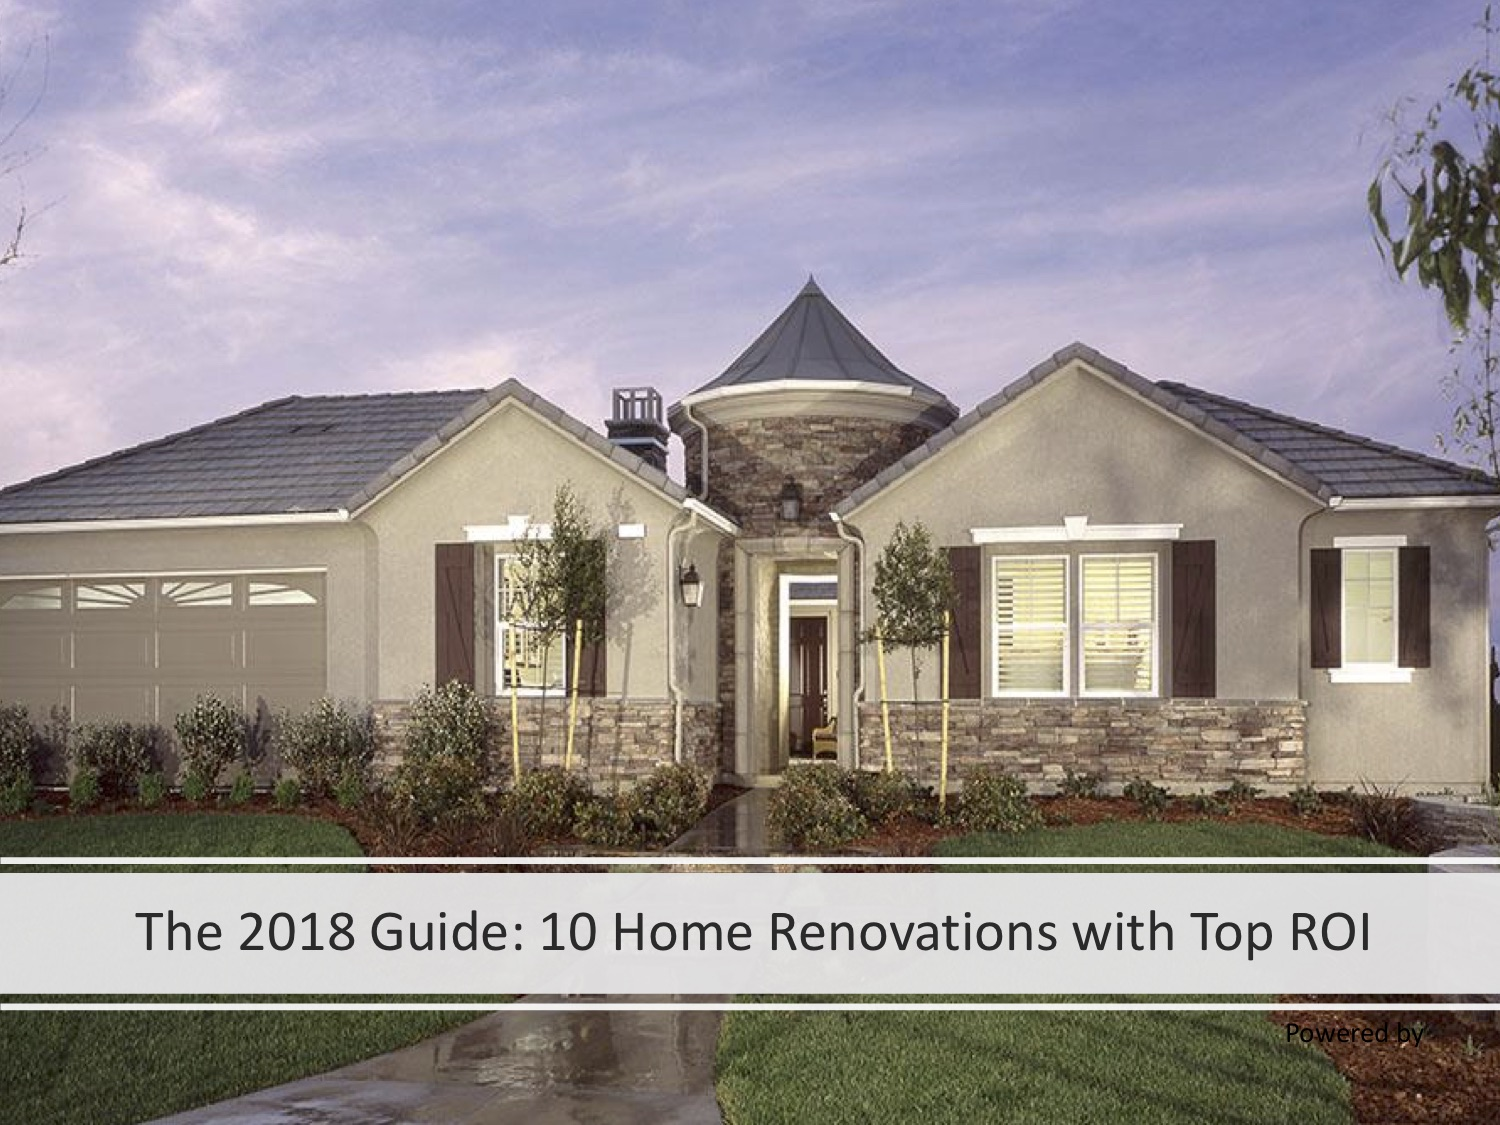 2018 Guide: Top 10 Home Renovations With Return on Investment Estimate